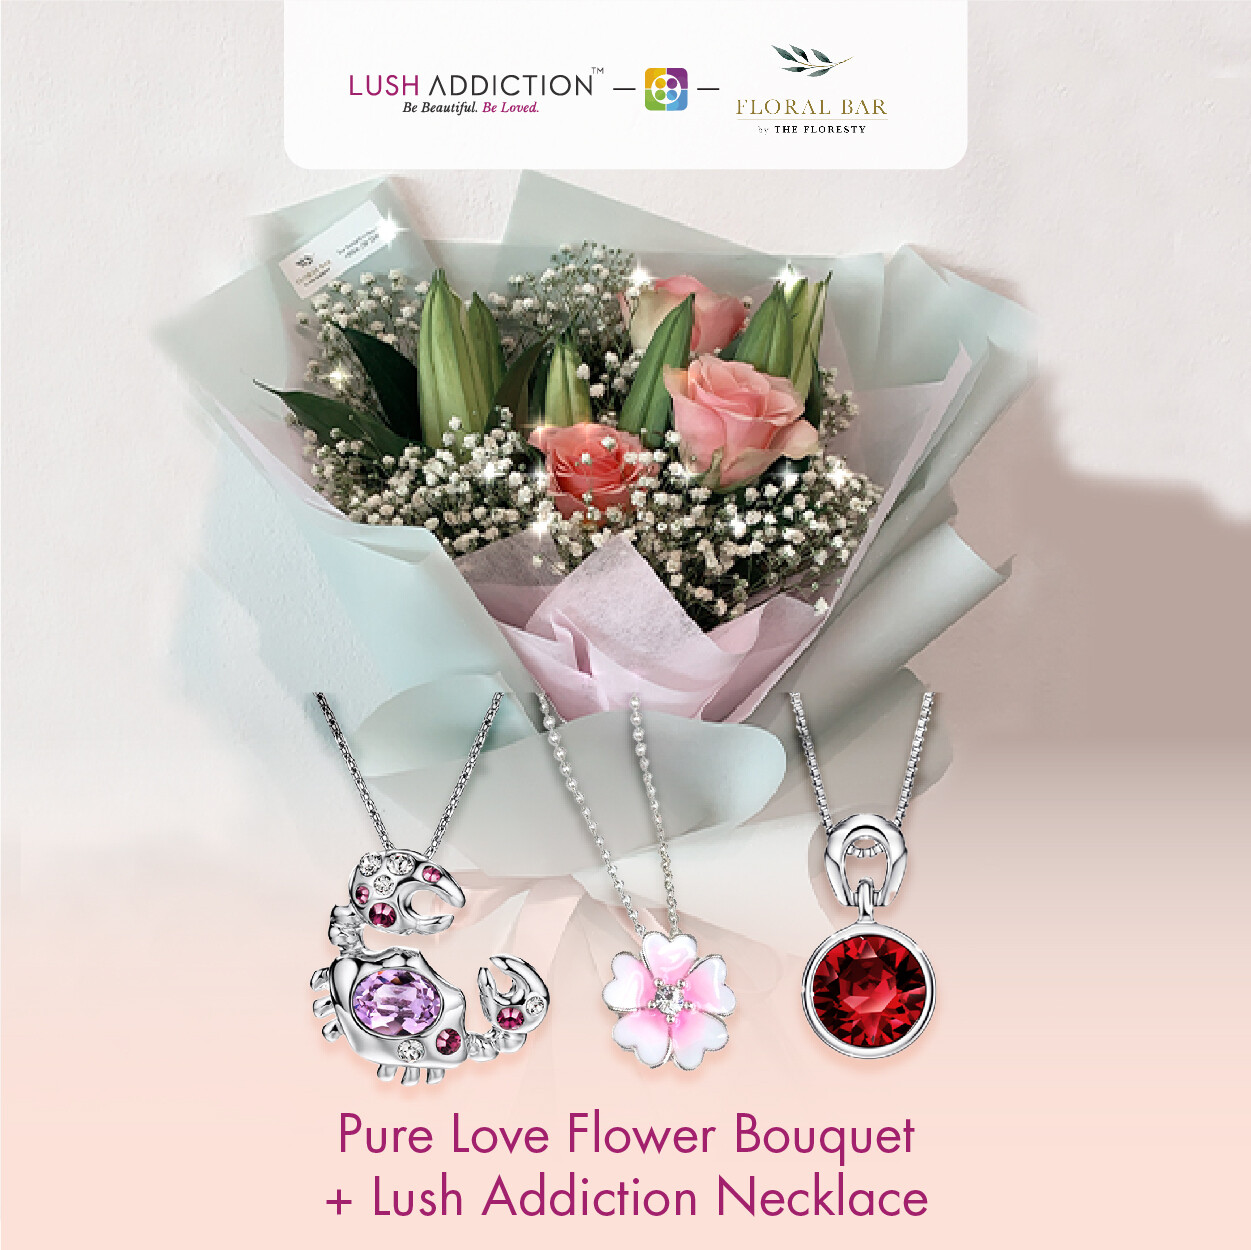 Pure Love Flowers Bouquet + Lush Addiction Necklace (By: Floral Bar By The Florestry from JB)